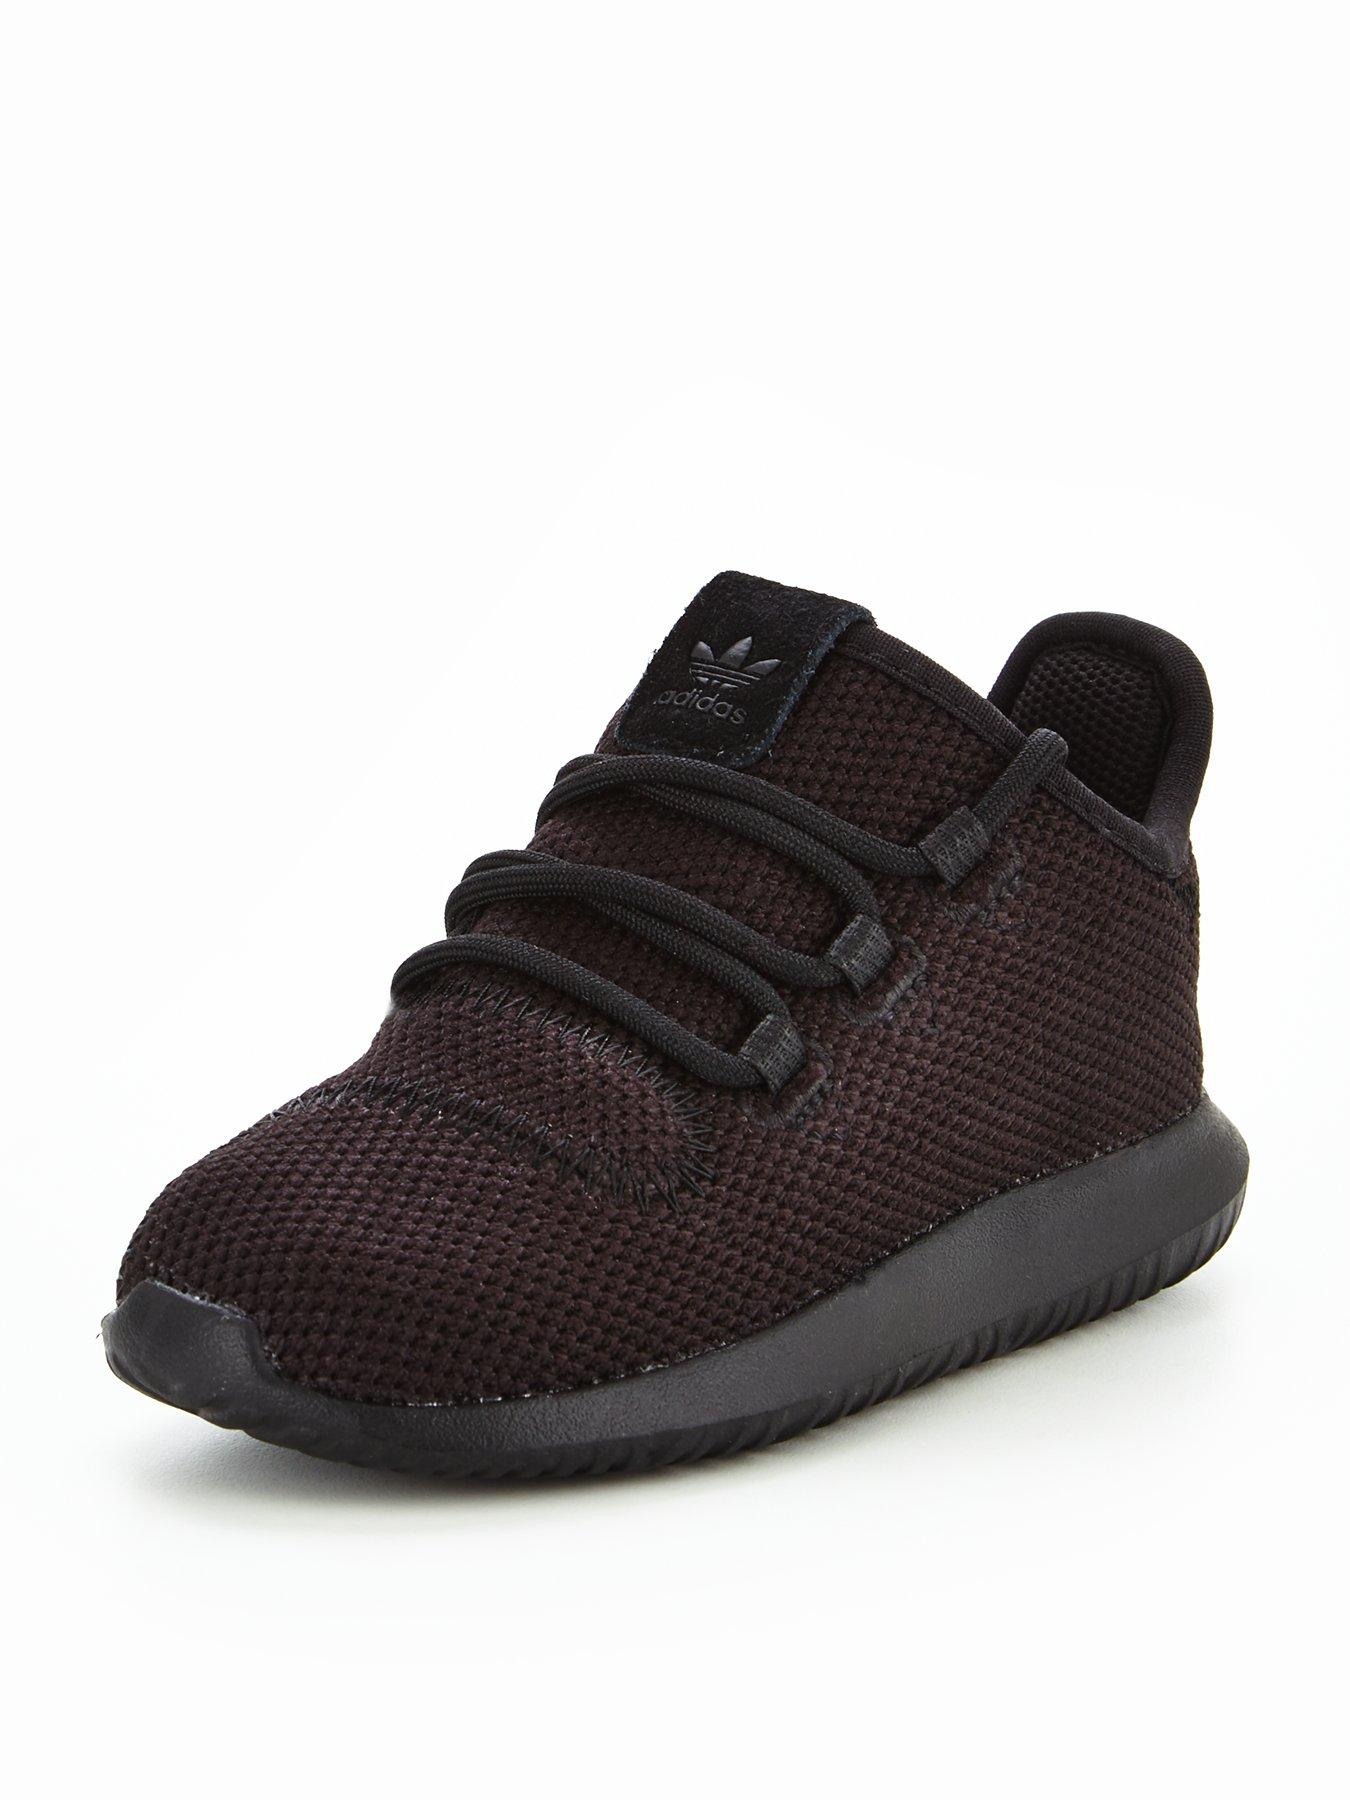 adidas Originals Tubular Shadow Infant Trainer